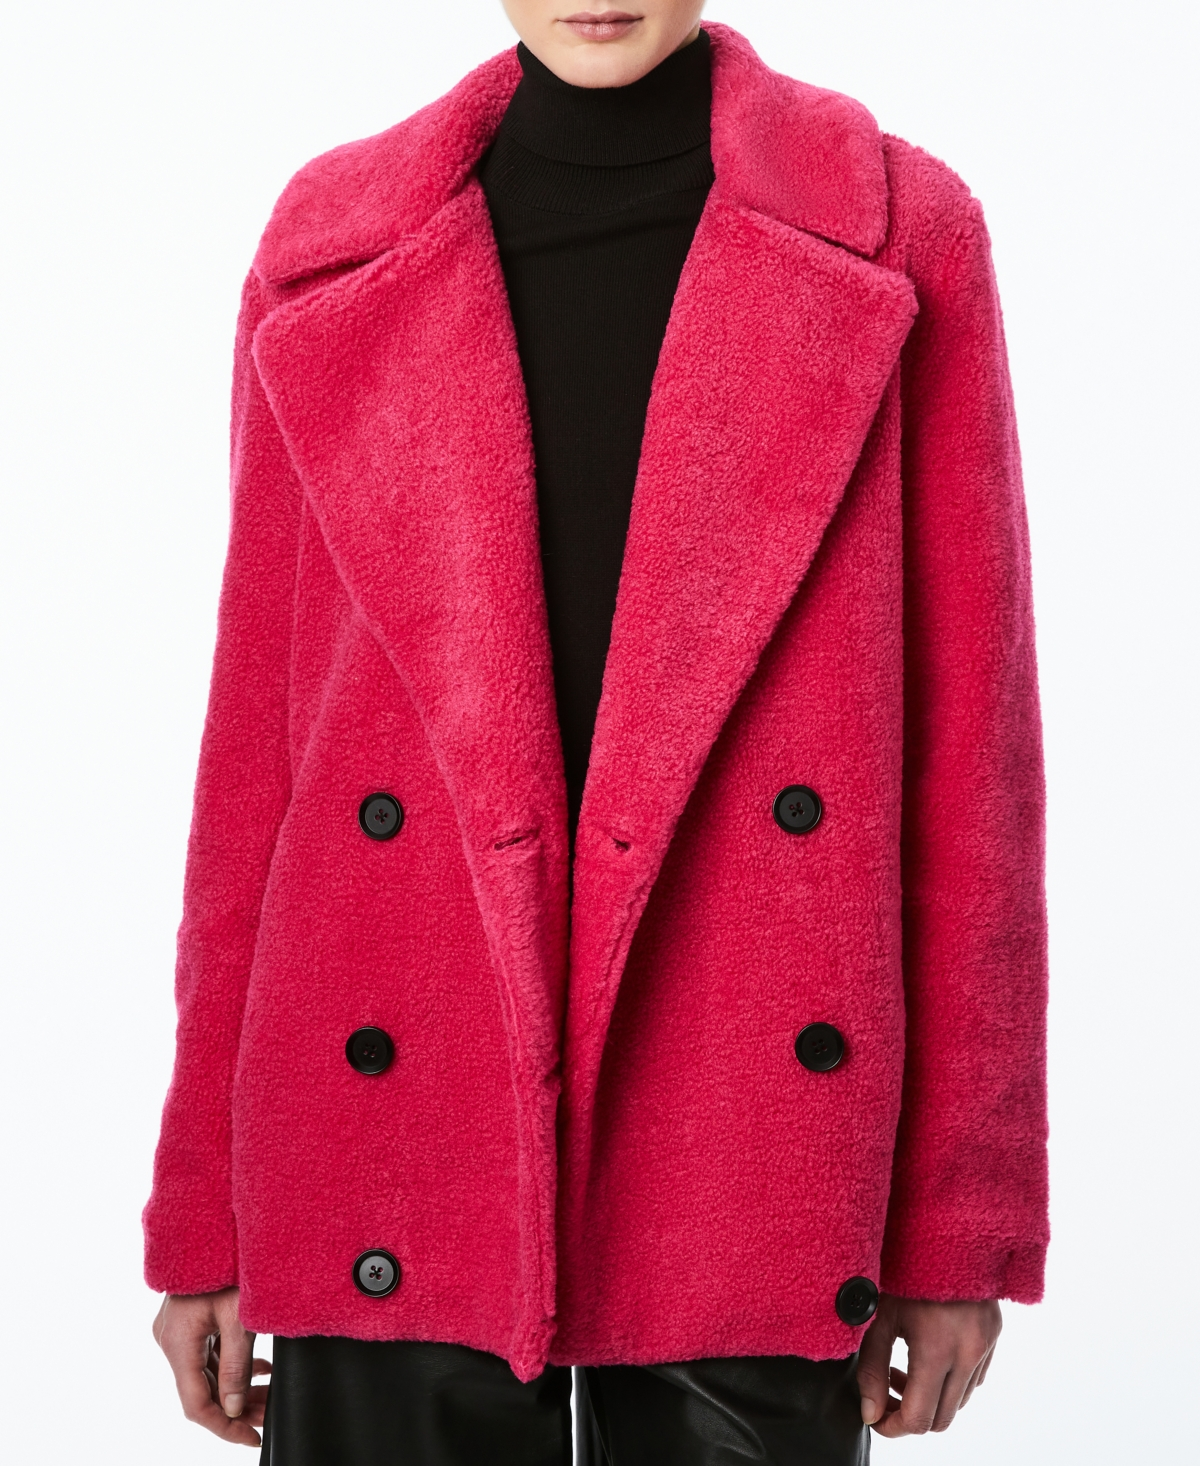 Juniors' Double-Breasted Faux-Fur Teddy Coat